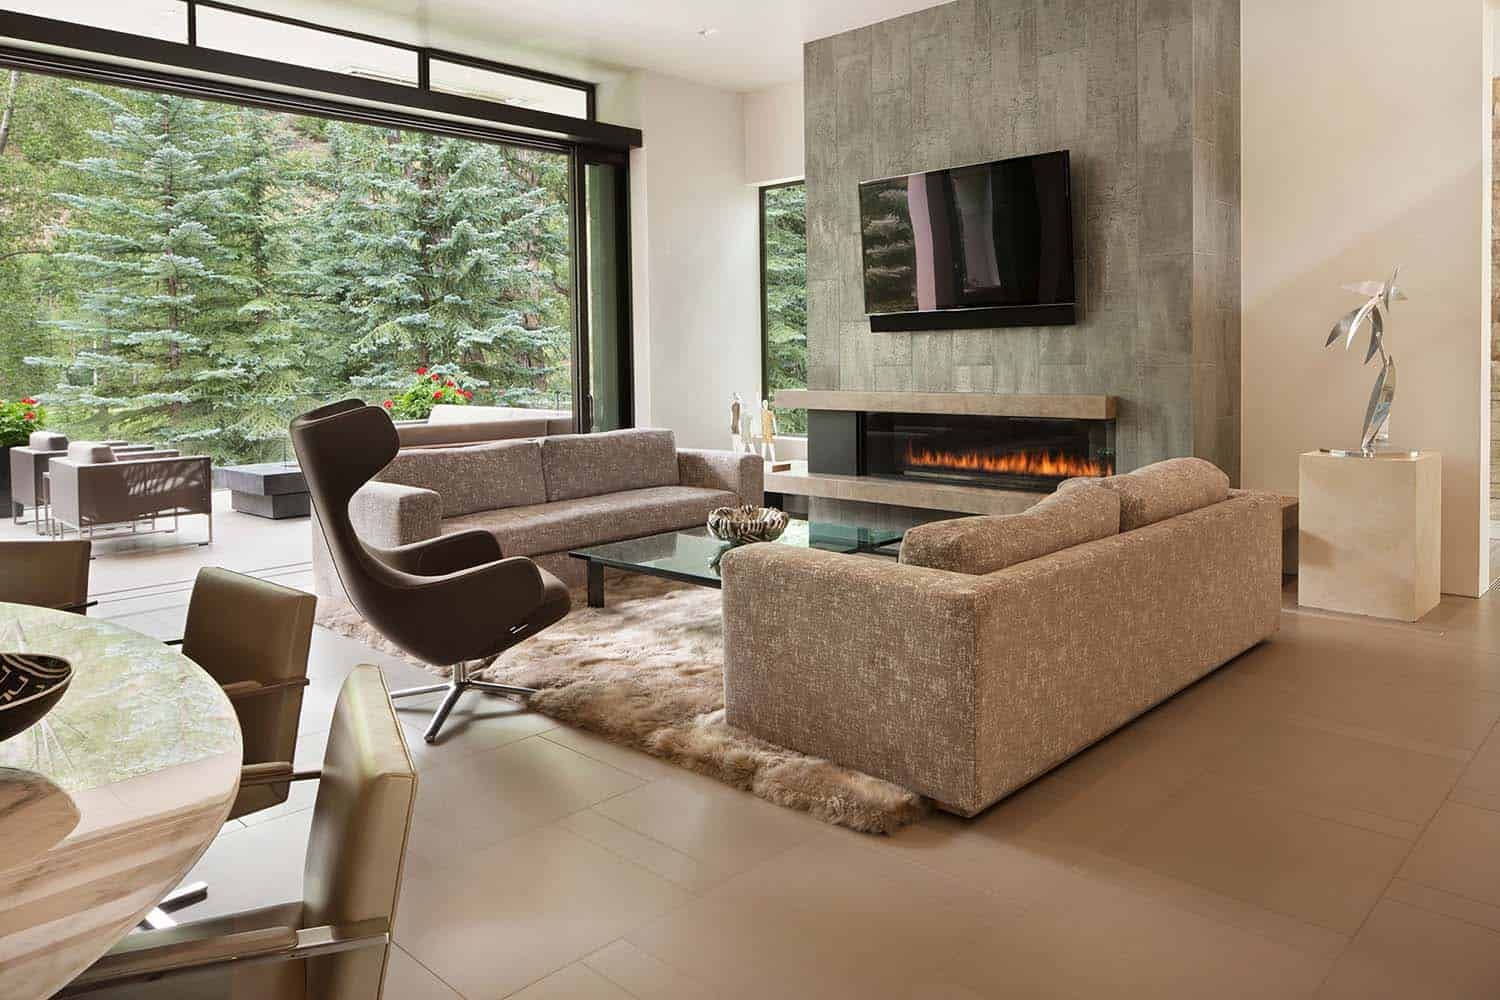 Contemporary Mountain Home-Charles Cunniffe Architects-10-1 Kindesign